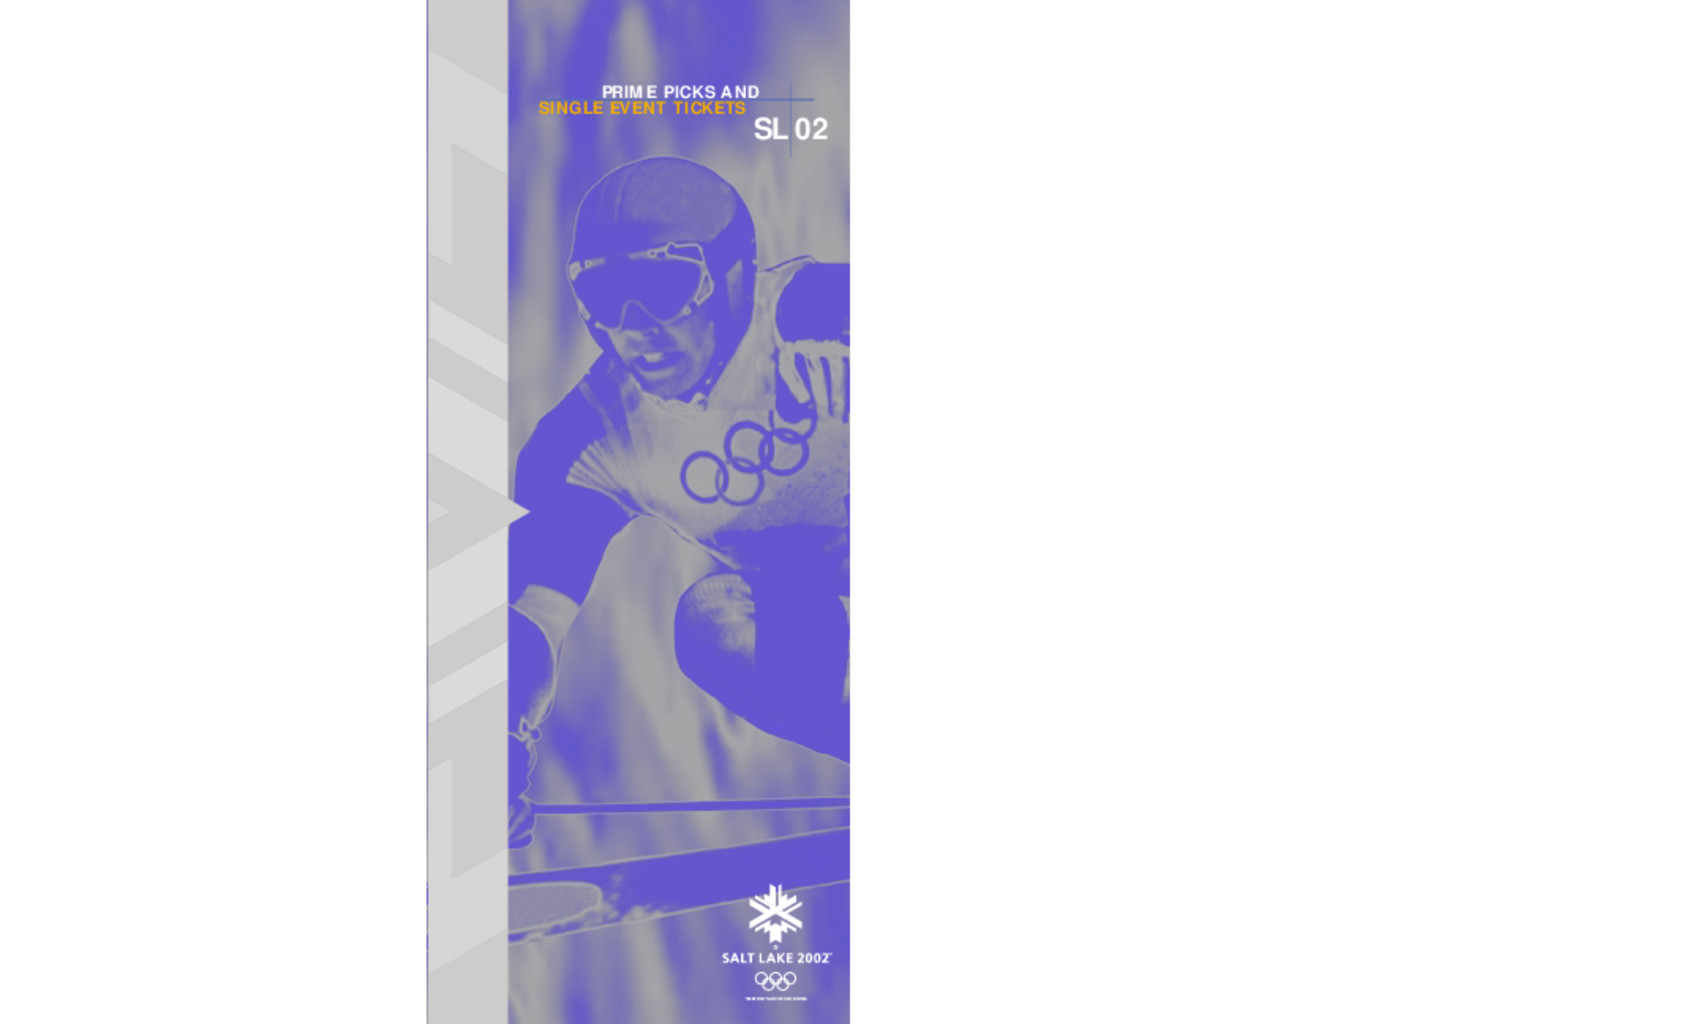 Prime picks and single event tickets : SL 2002 / Salt Lake Organizing Committee for the Olympic Winter Games of 2002 | Olympic Winter Games. Organizing Committee. 19, 2002, Salt Lake City